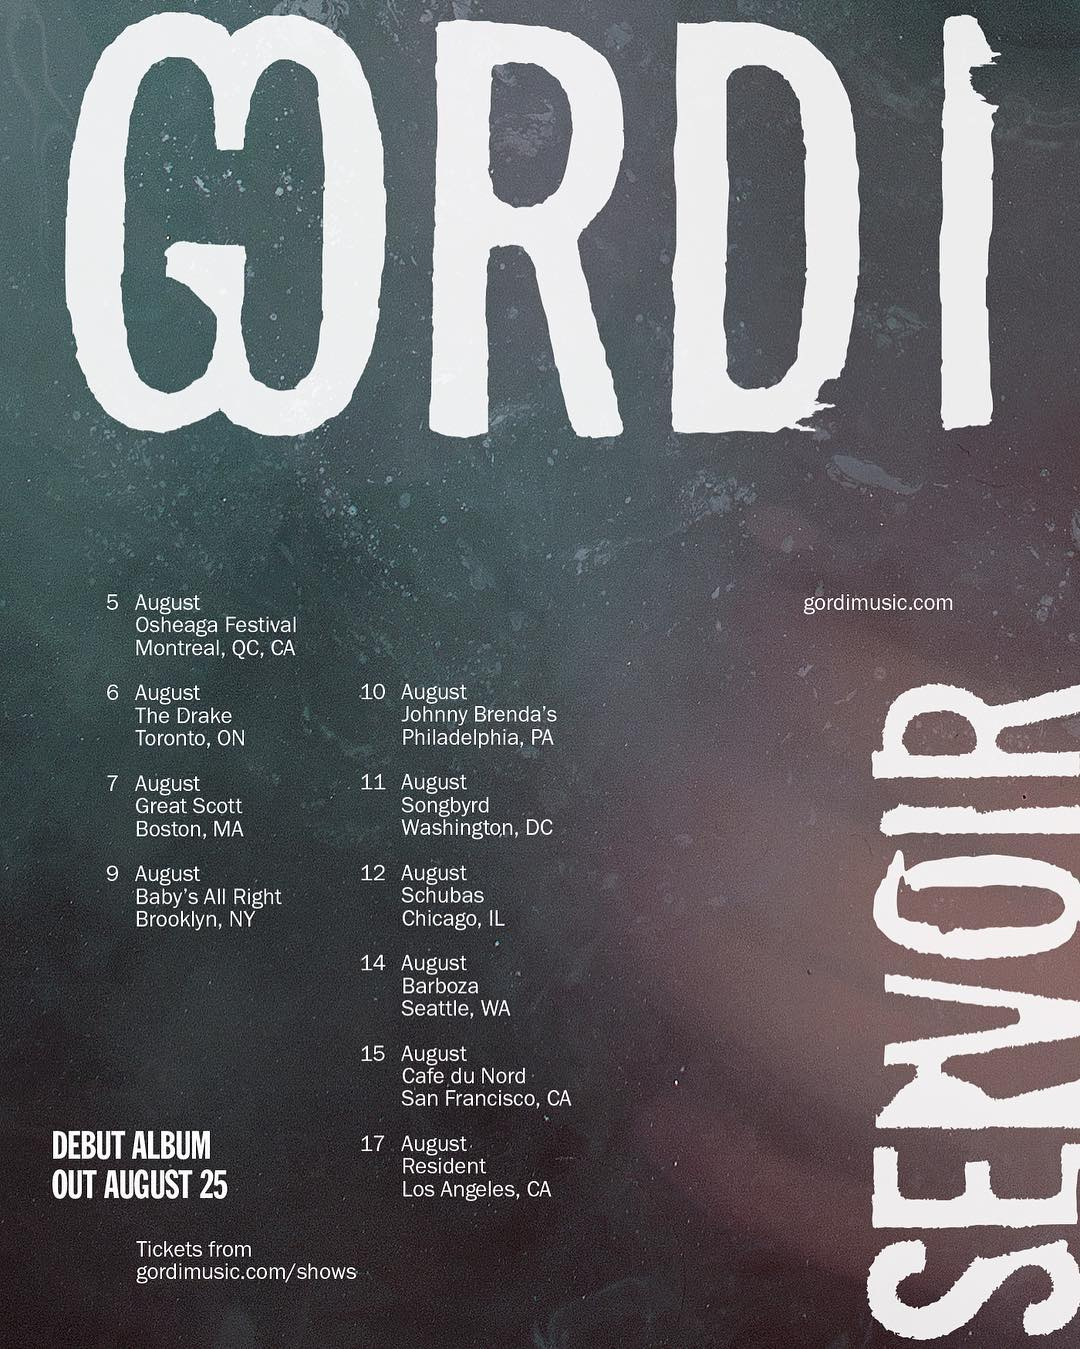 Gordi :: August 2017 tour dates